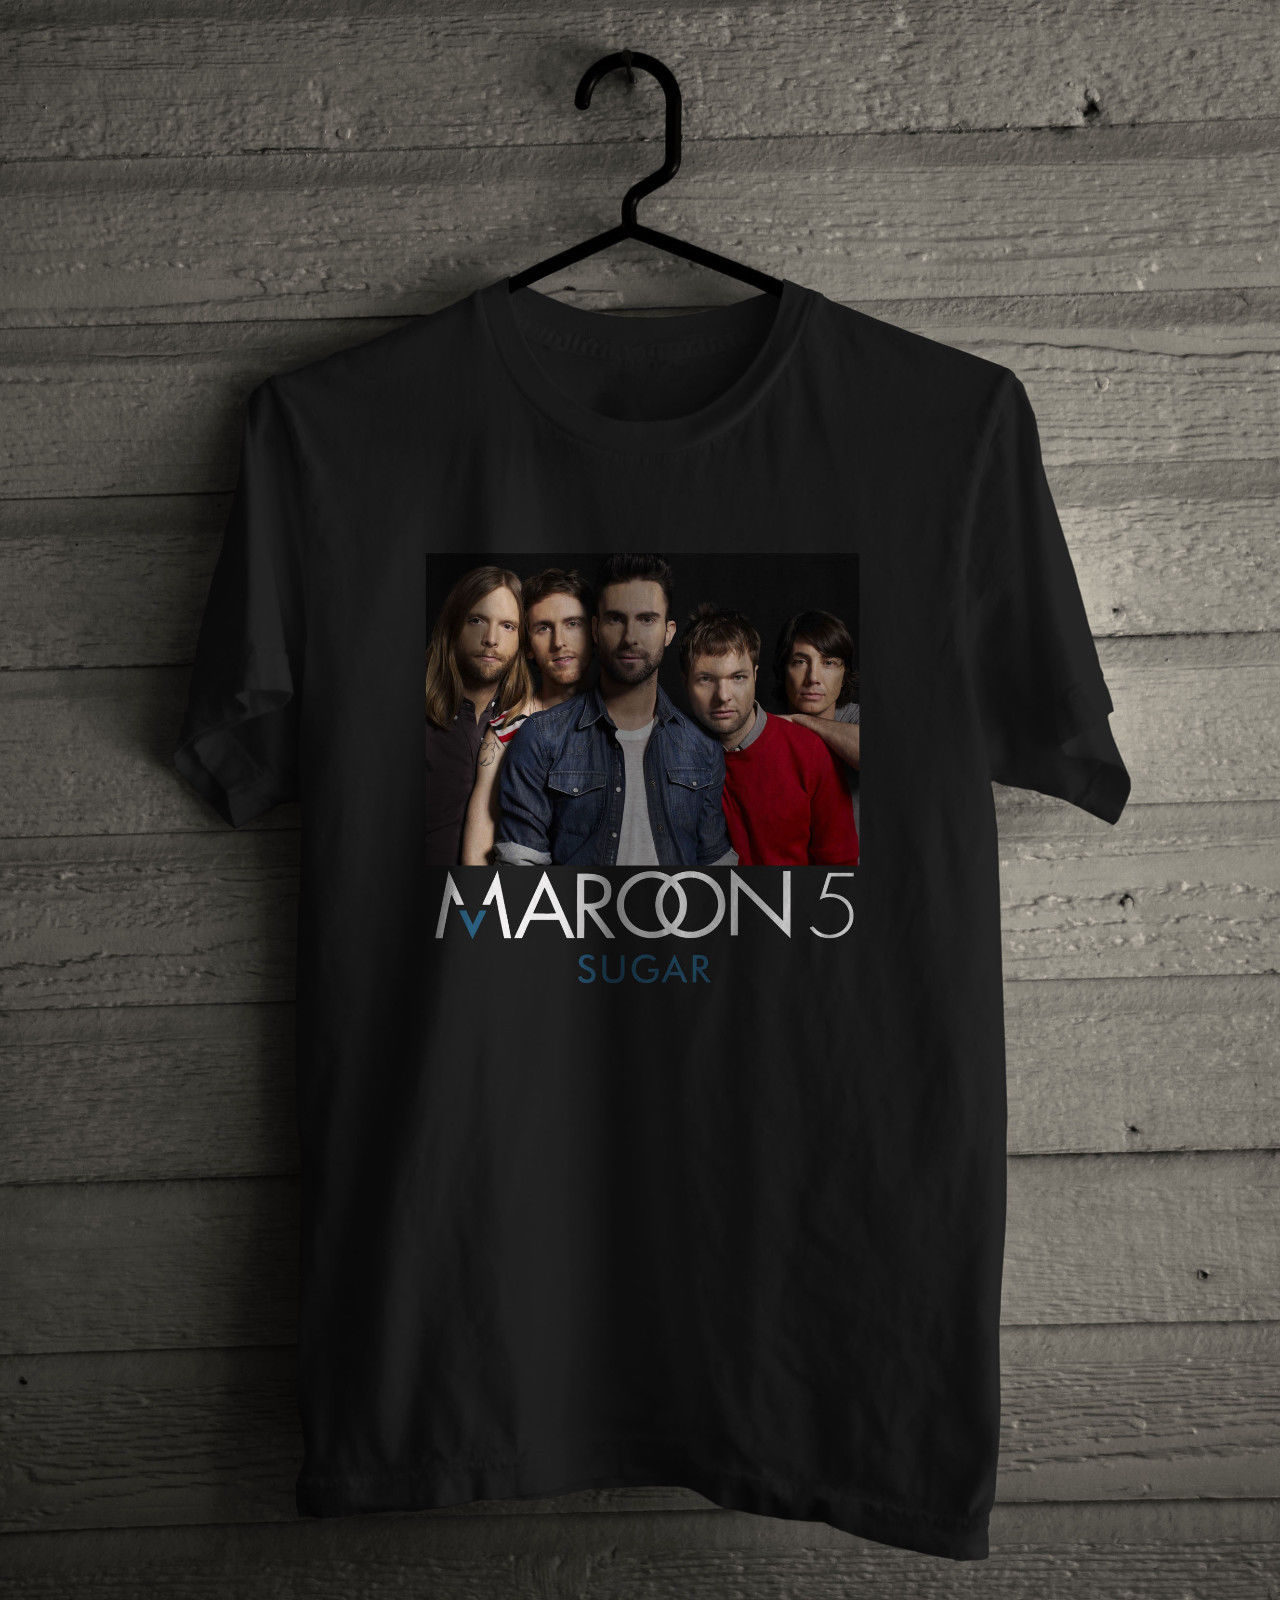 Maroon 5 T Shirt Aka KaraS Flowers American Pop Rock Band Sugar Black Tee